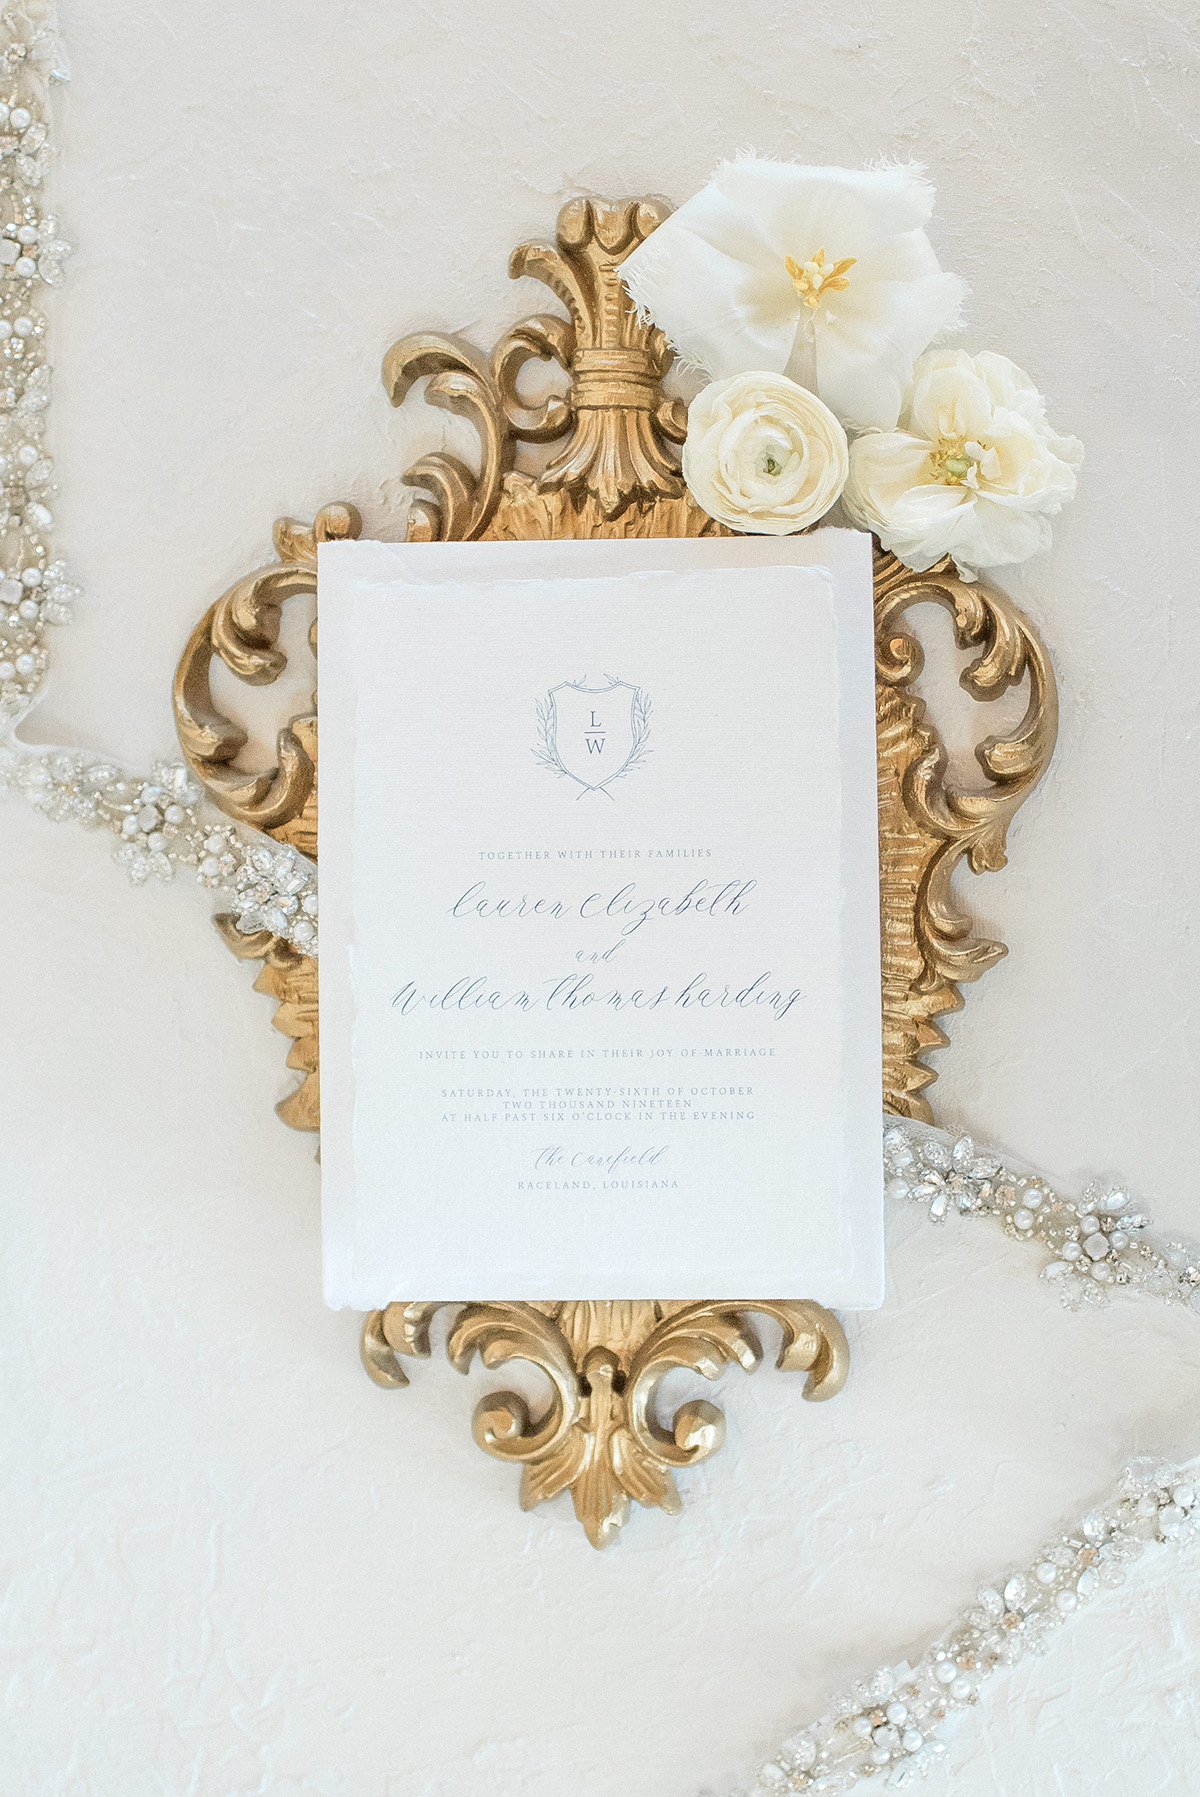 Wedding Invitation by InvitoBella, LLC | Photo by The Crawfords Photography